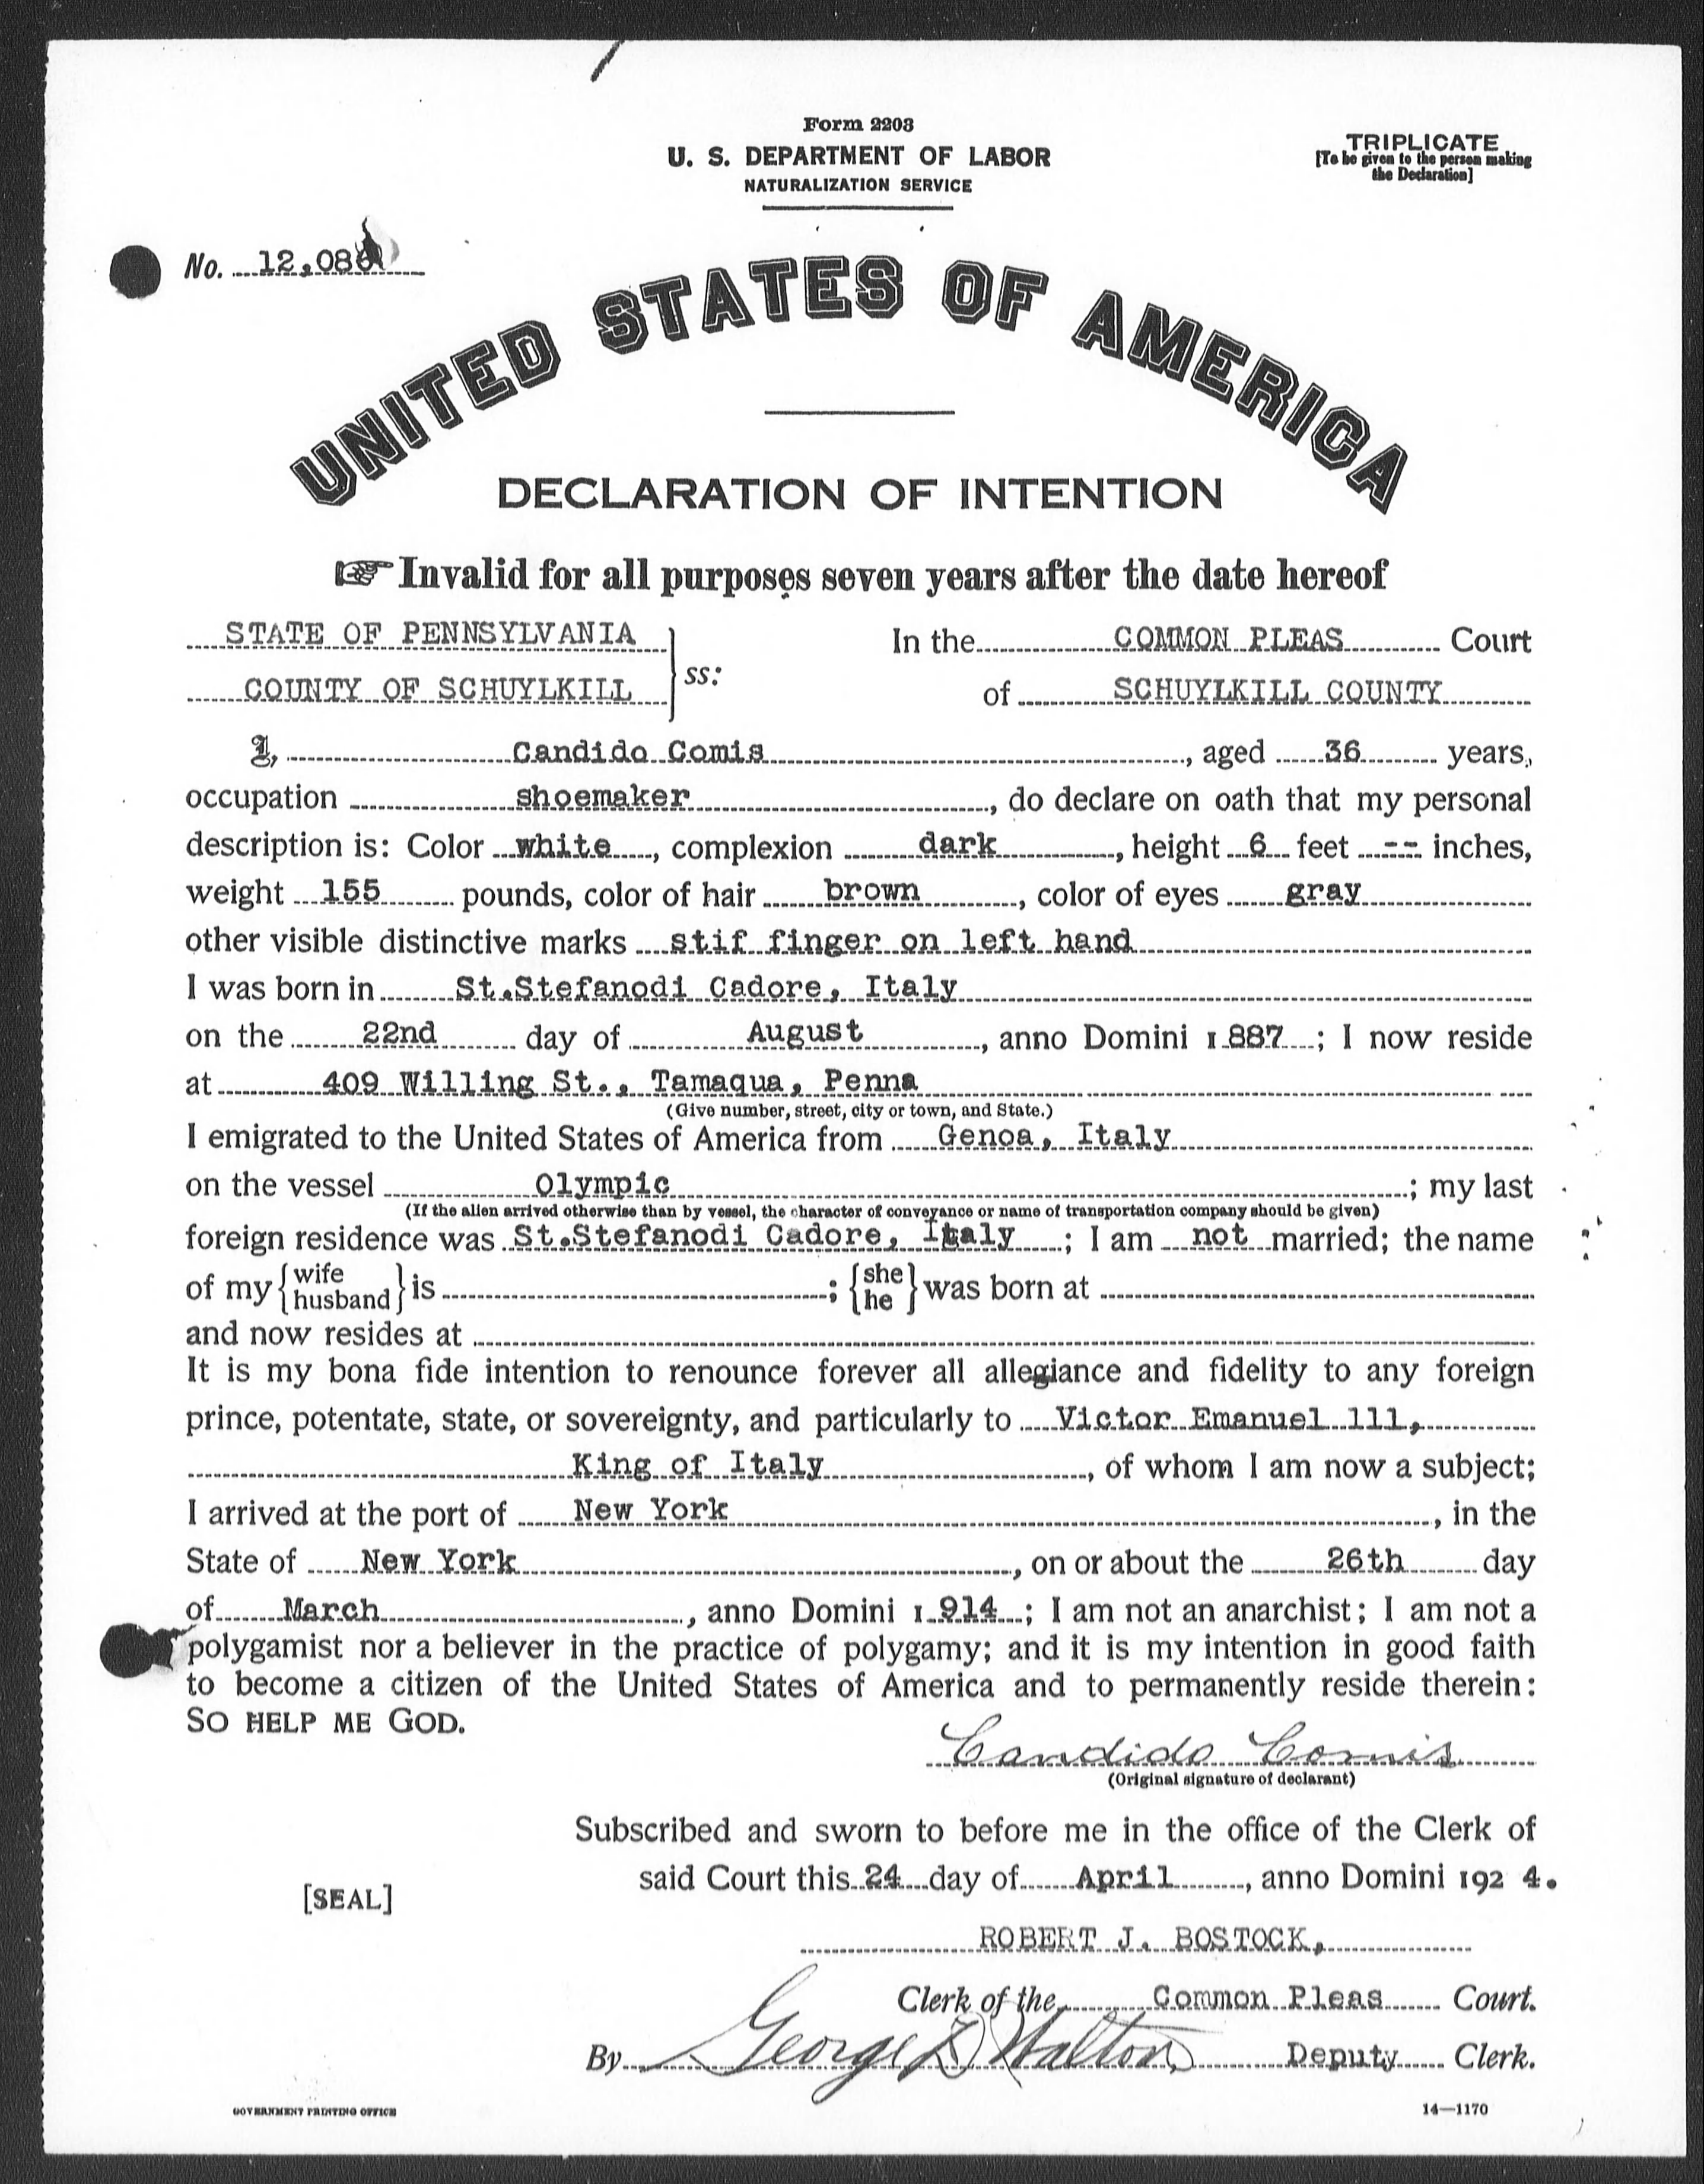 Petition for Naturalization of Candido Comis